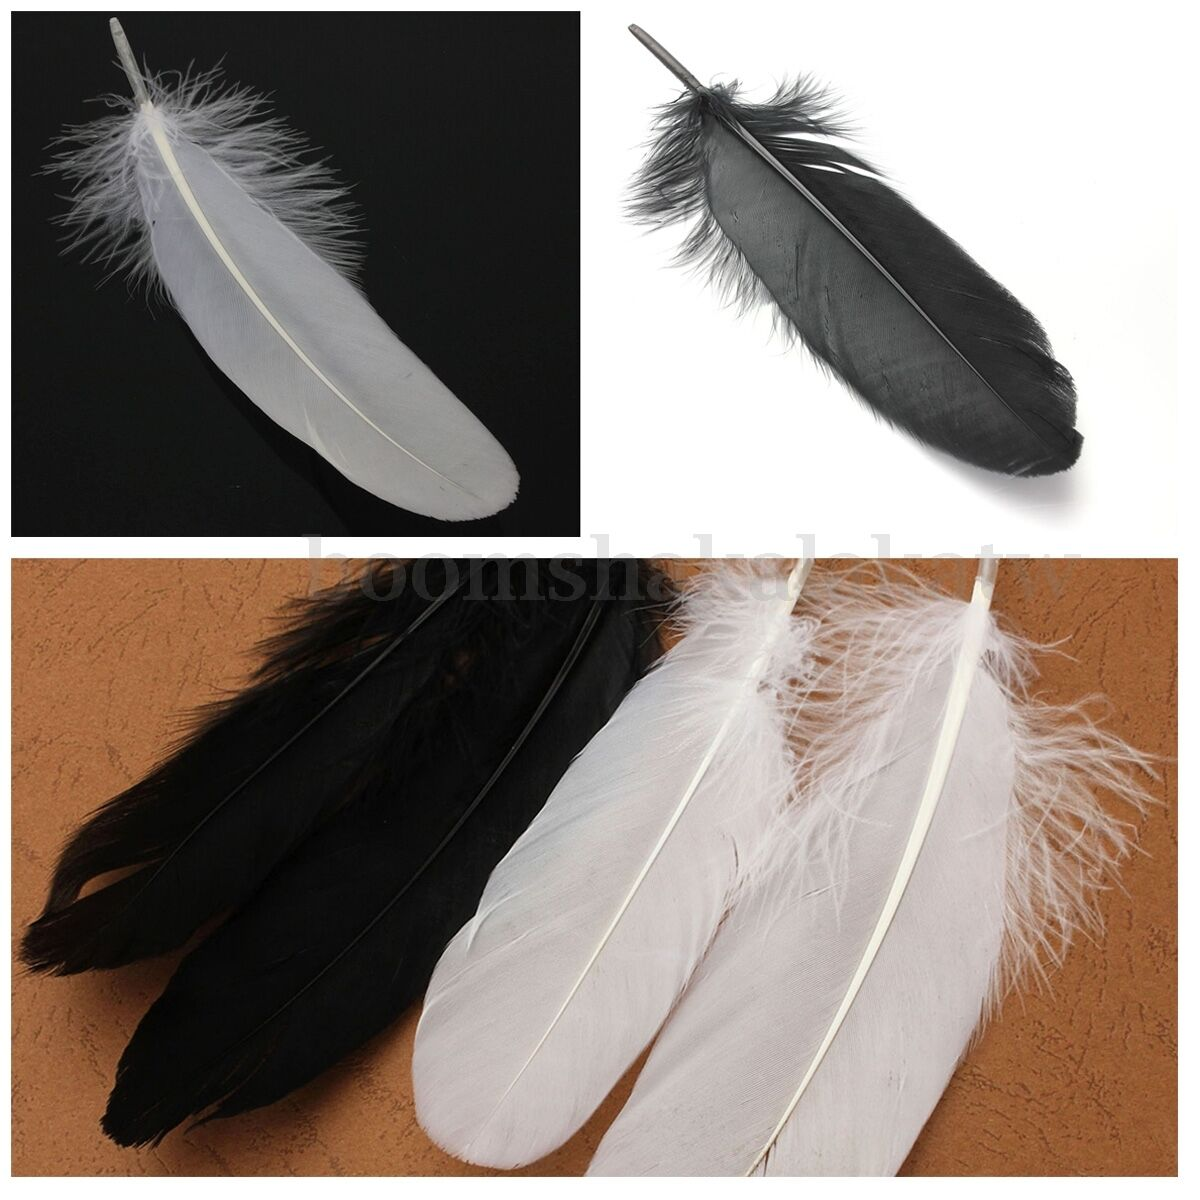 15 20cm white black goose feathers feather diy crafts for Where can i buy feathers for crafts